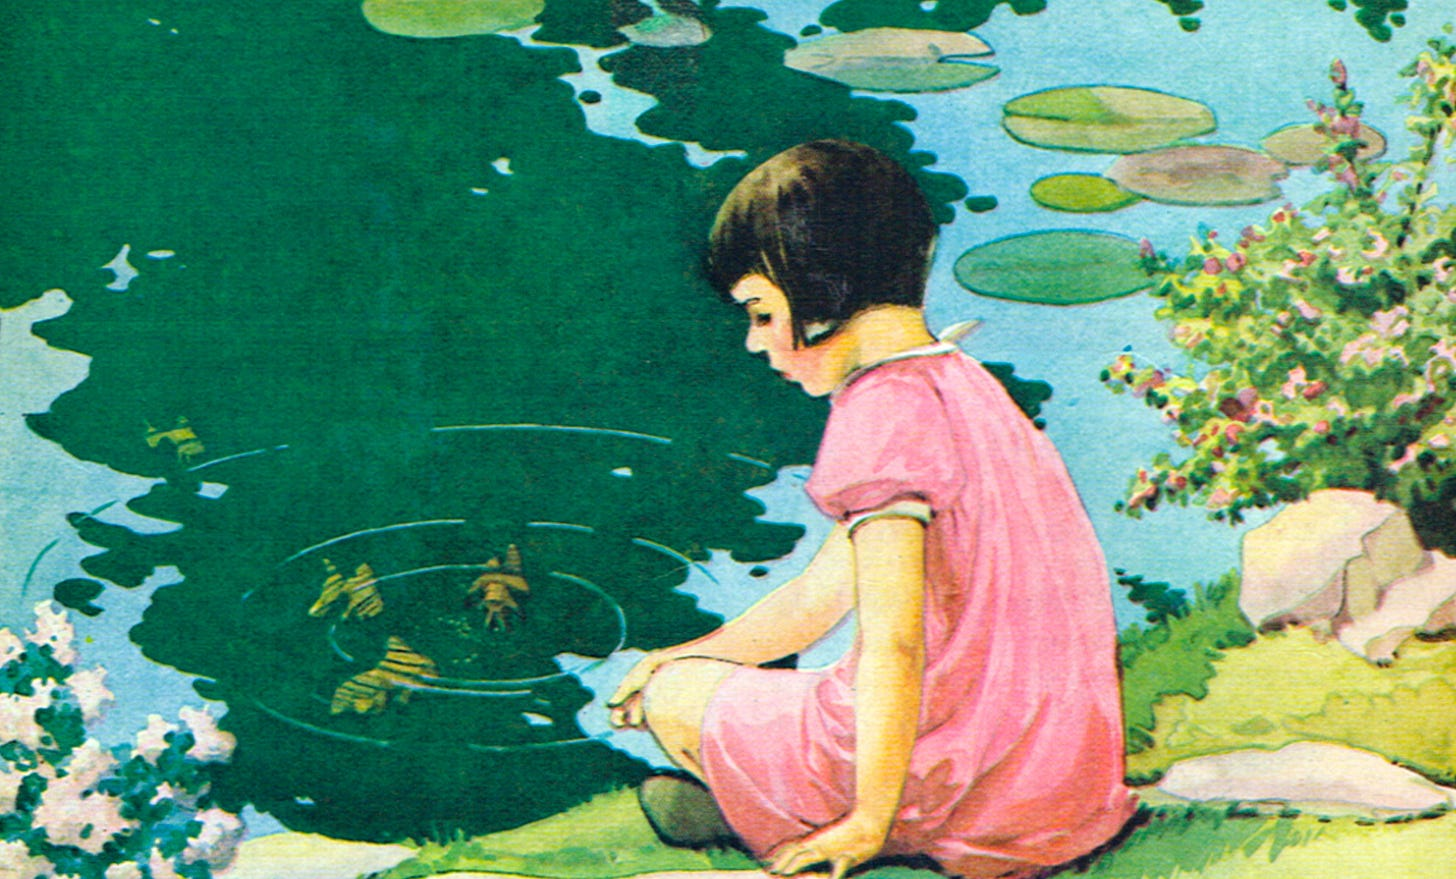 An illustration of a little girl sitting by a placid, calm pond. Original art by Miriam Story Hurford.